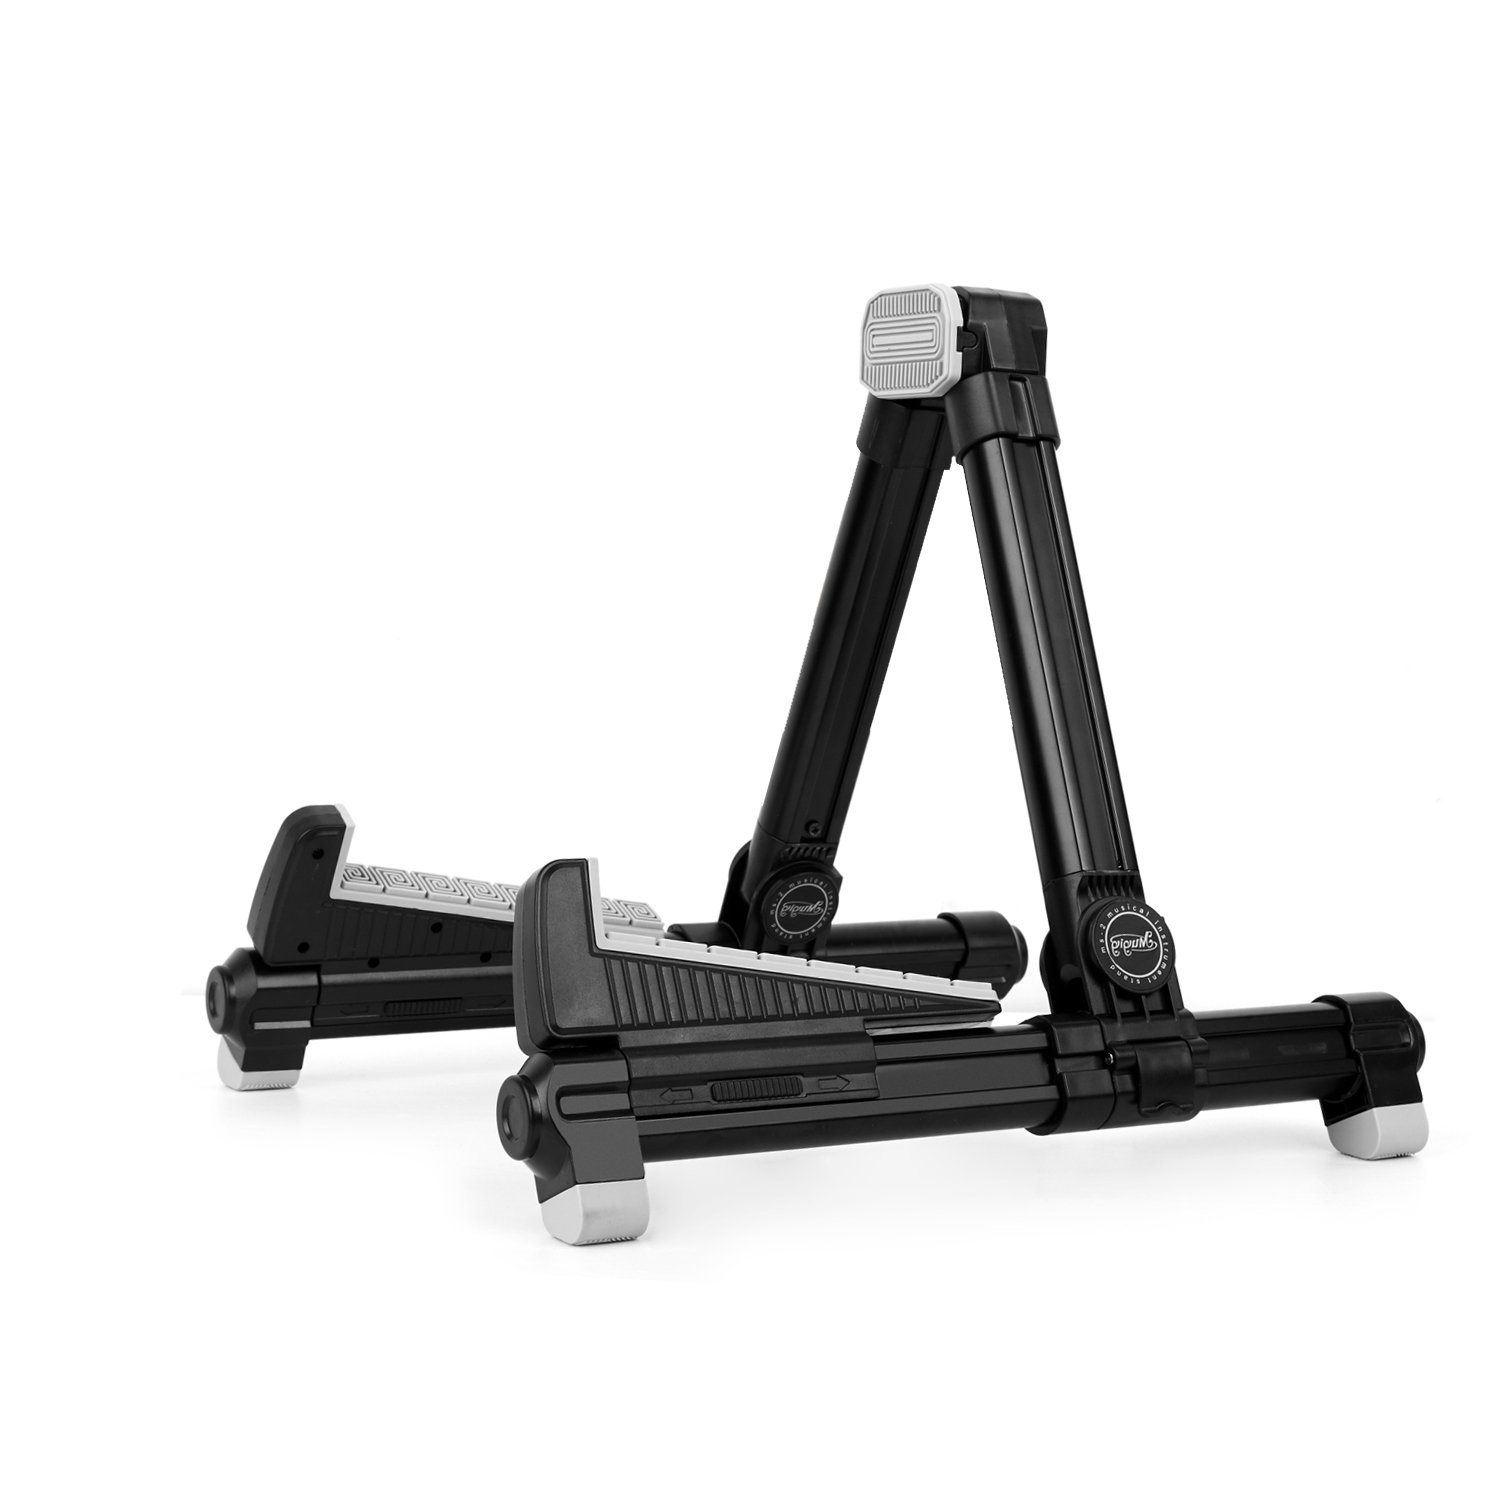 Universal Design Portable Adjustable Folding A-Frame Professional Travel Stands for Acoustic/Electric/Classical Guitar,Bass,Banjo (Black)